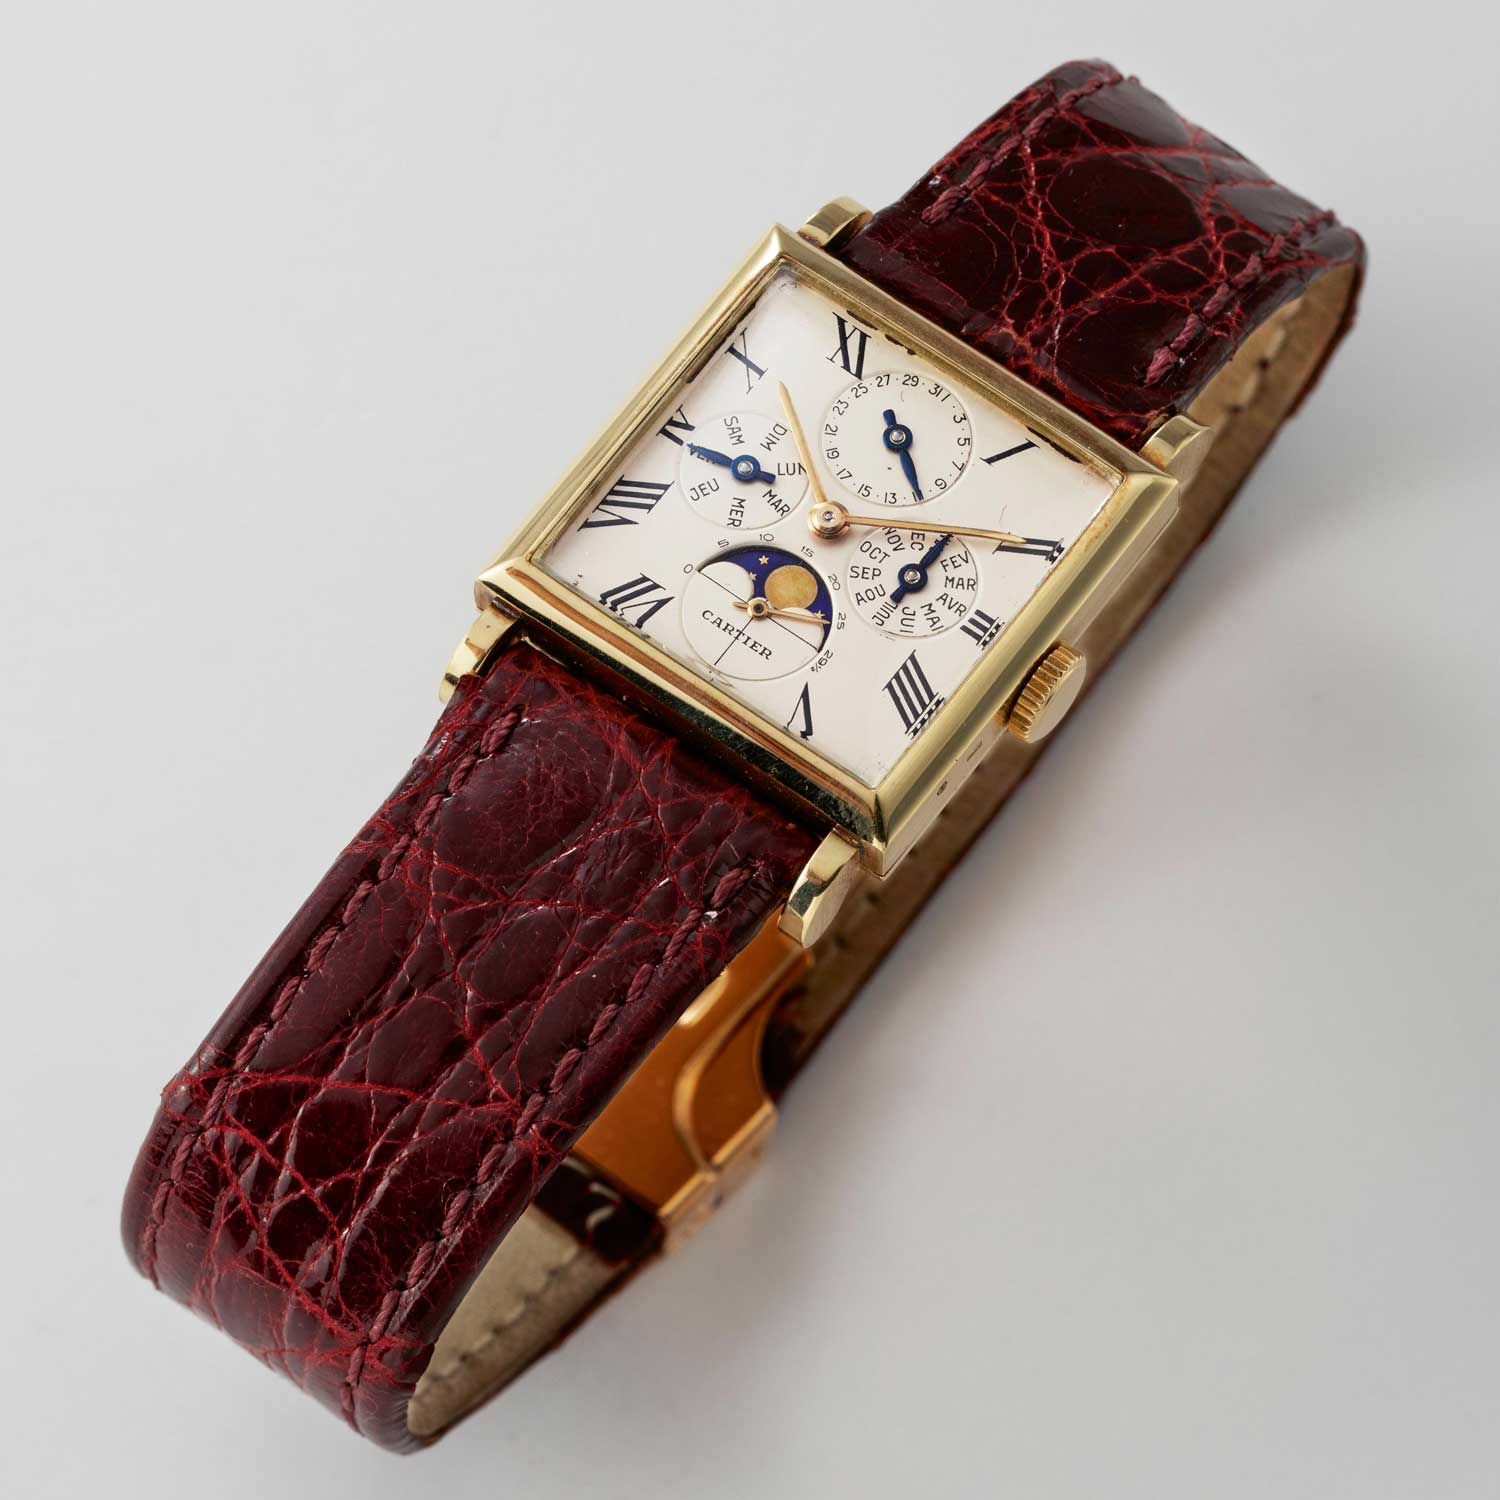 Rare Cartier watch with a complete calendar with movement by Audemars Piguet (Image © Revolution)